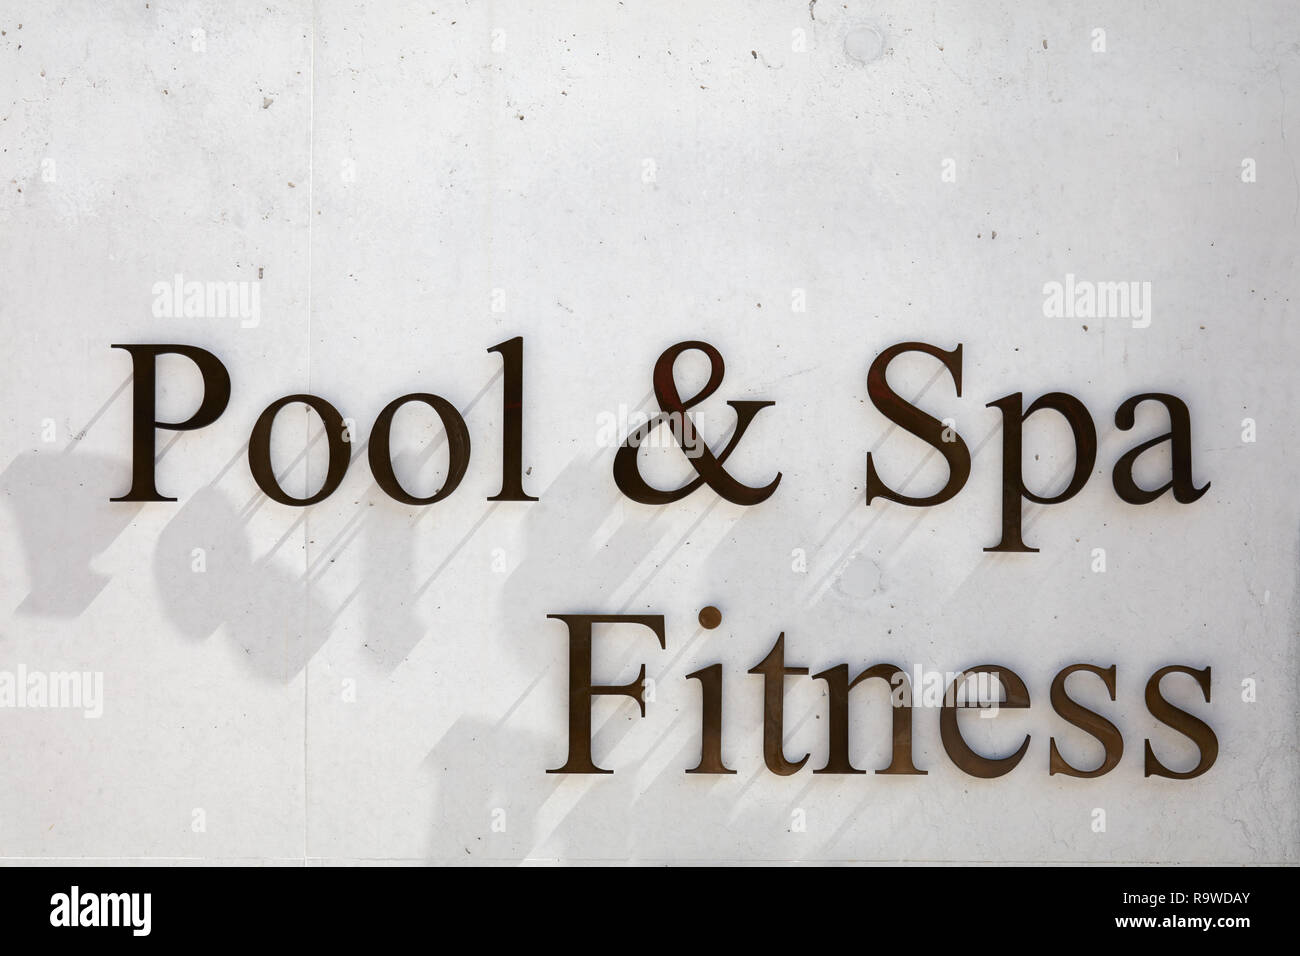 SANKT MORITZ, SWITZERLAND - AUGUST 16, 2018: Pool, spa and fitness writing in metal letters on concrete texture background in Saint Moritz - Stock Image